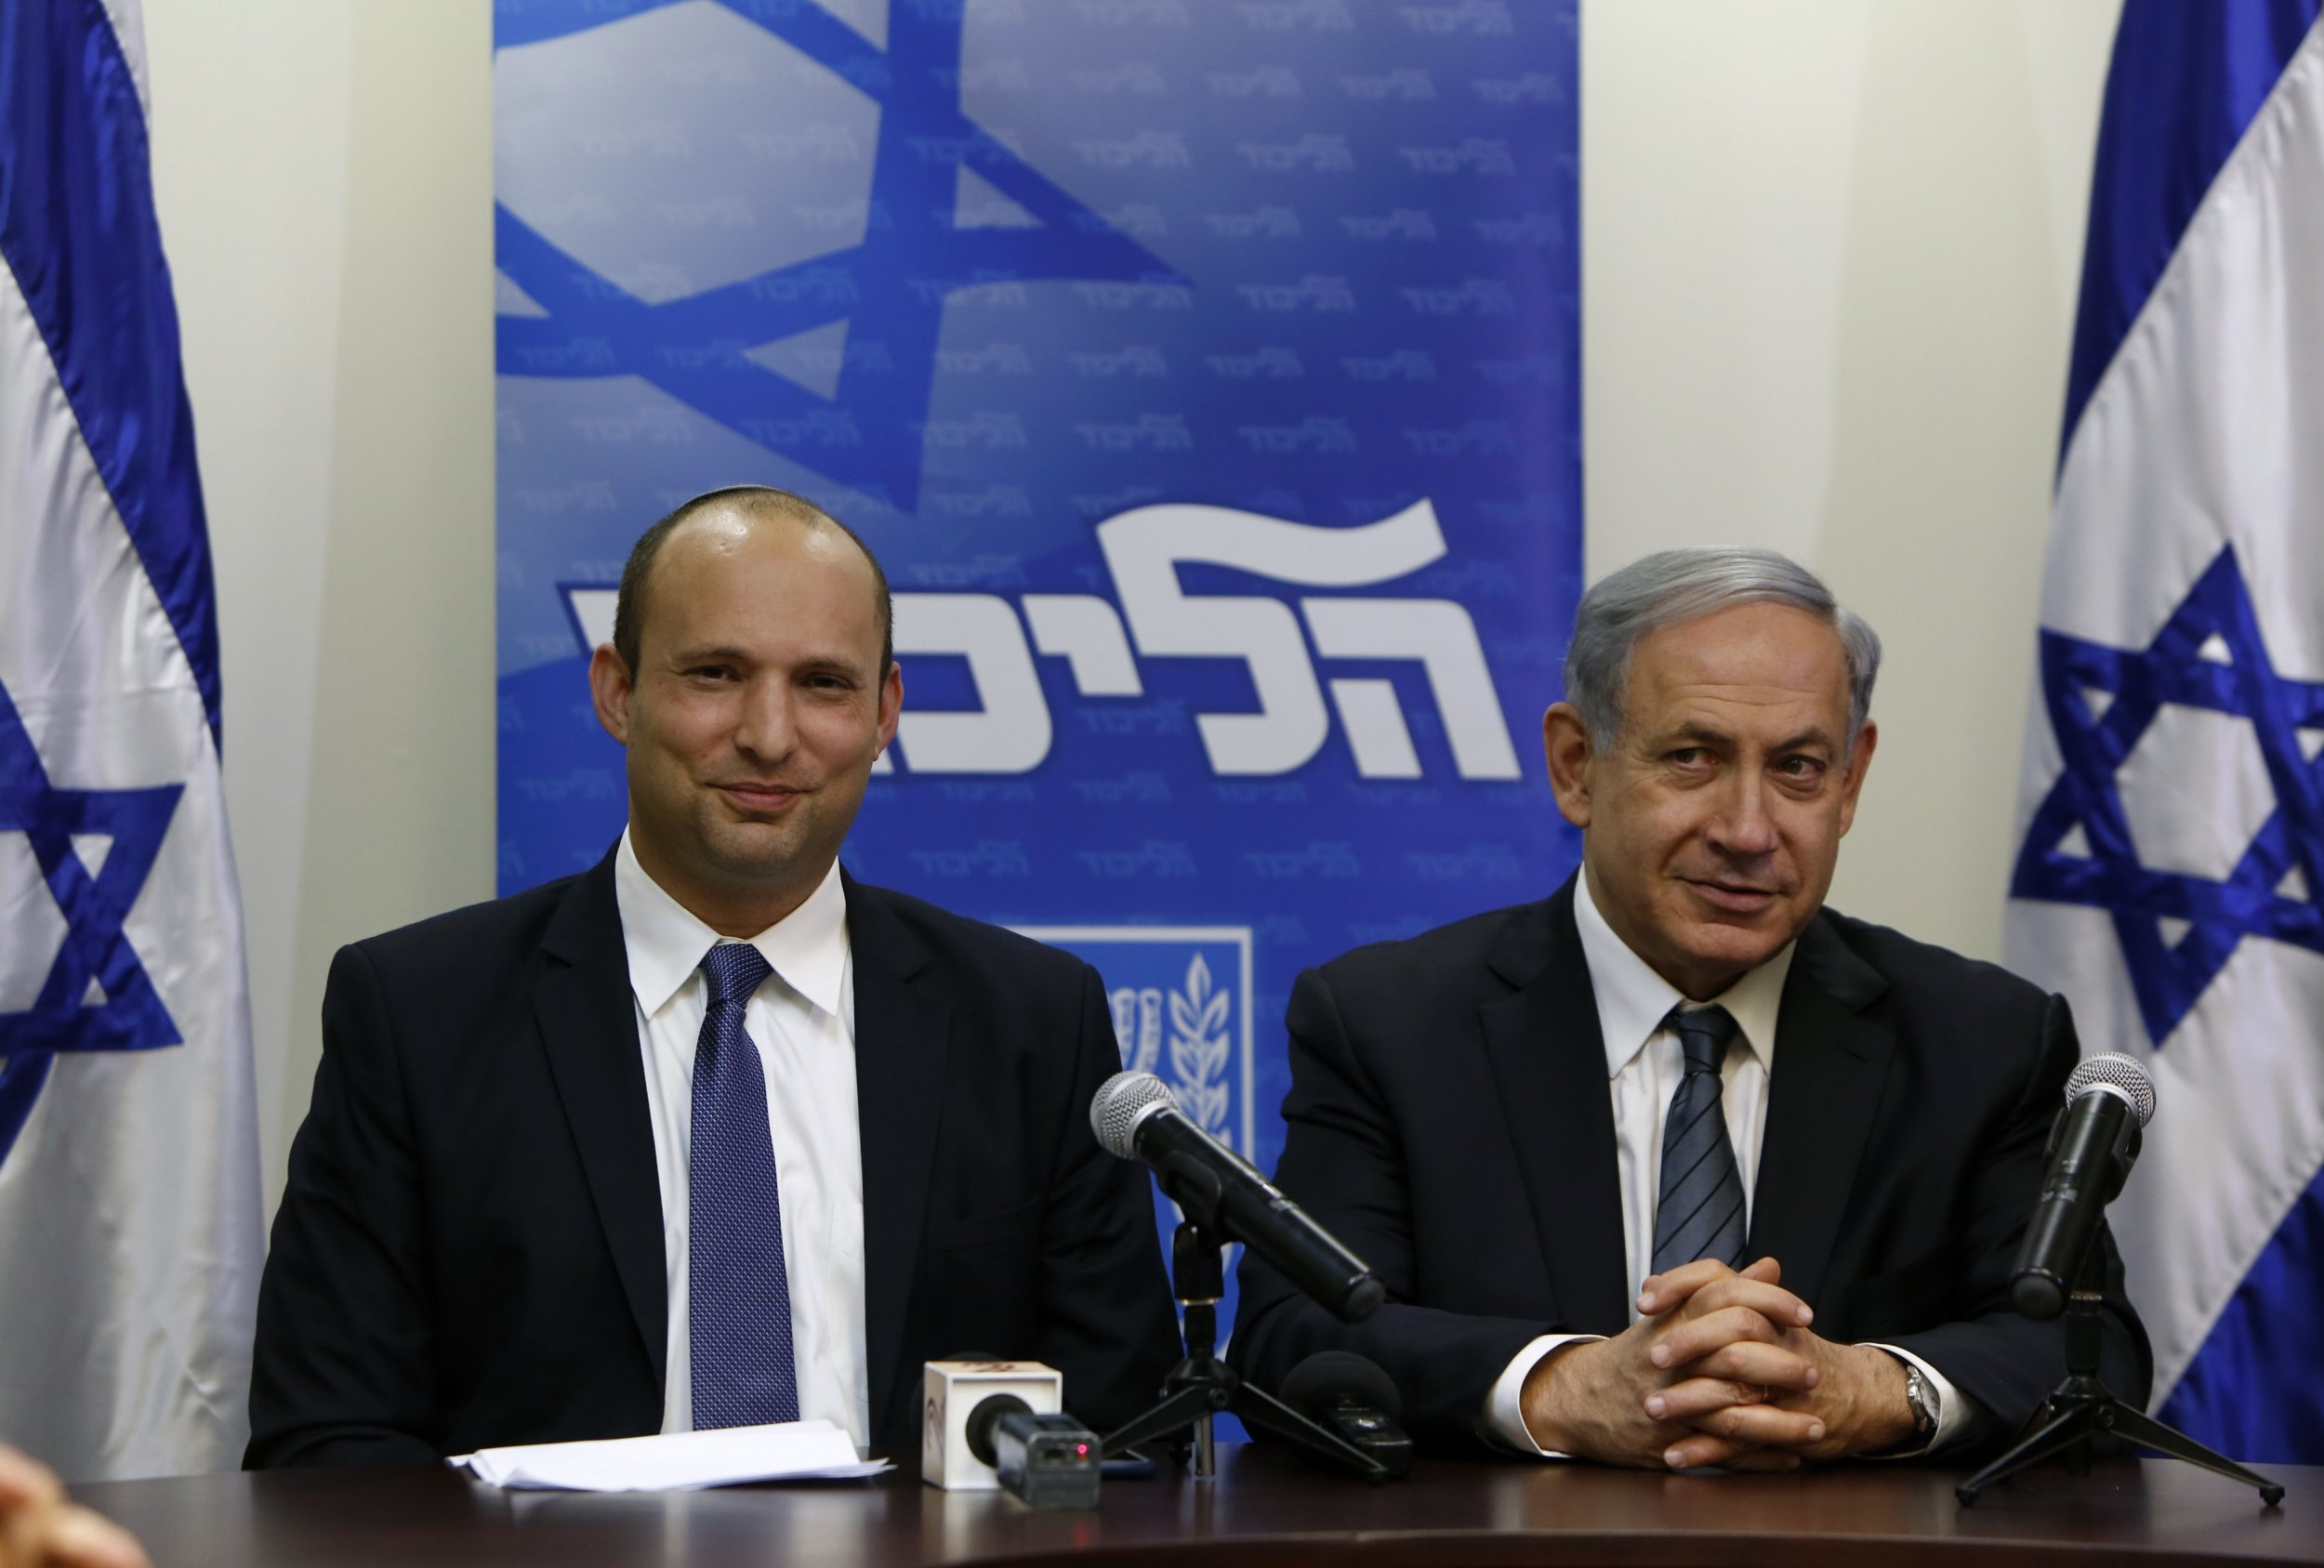 Israeli PM Netanyahu and Education Minister Naftali Bennett